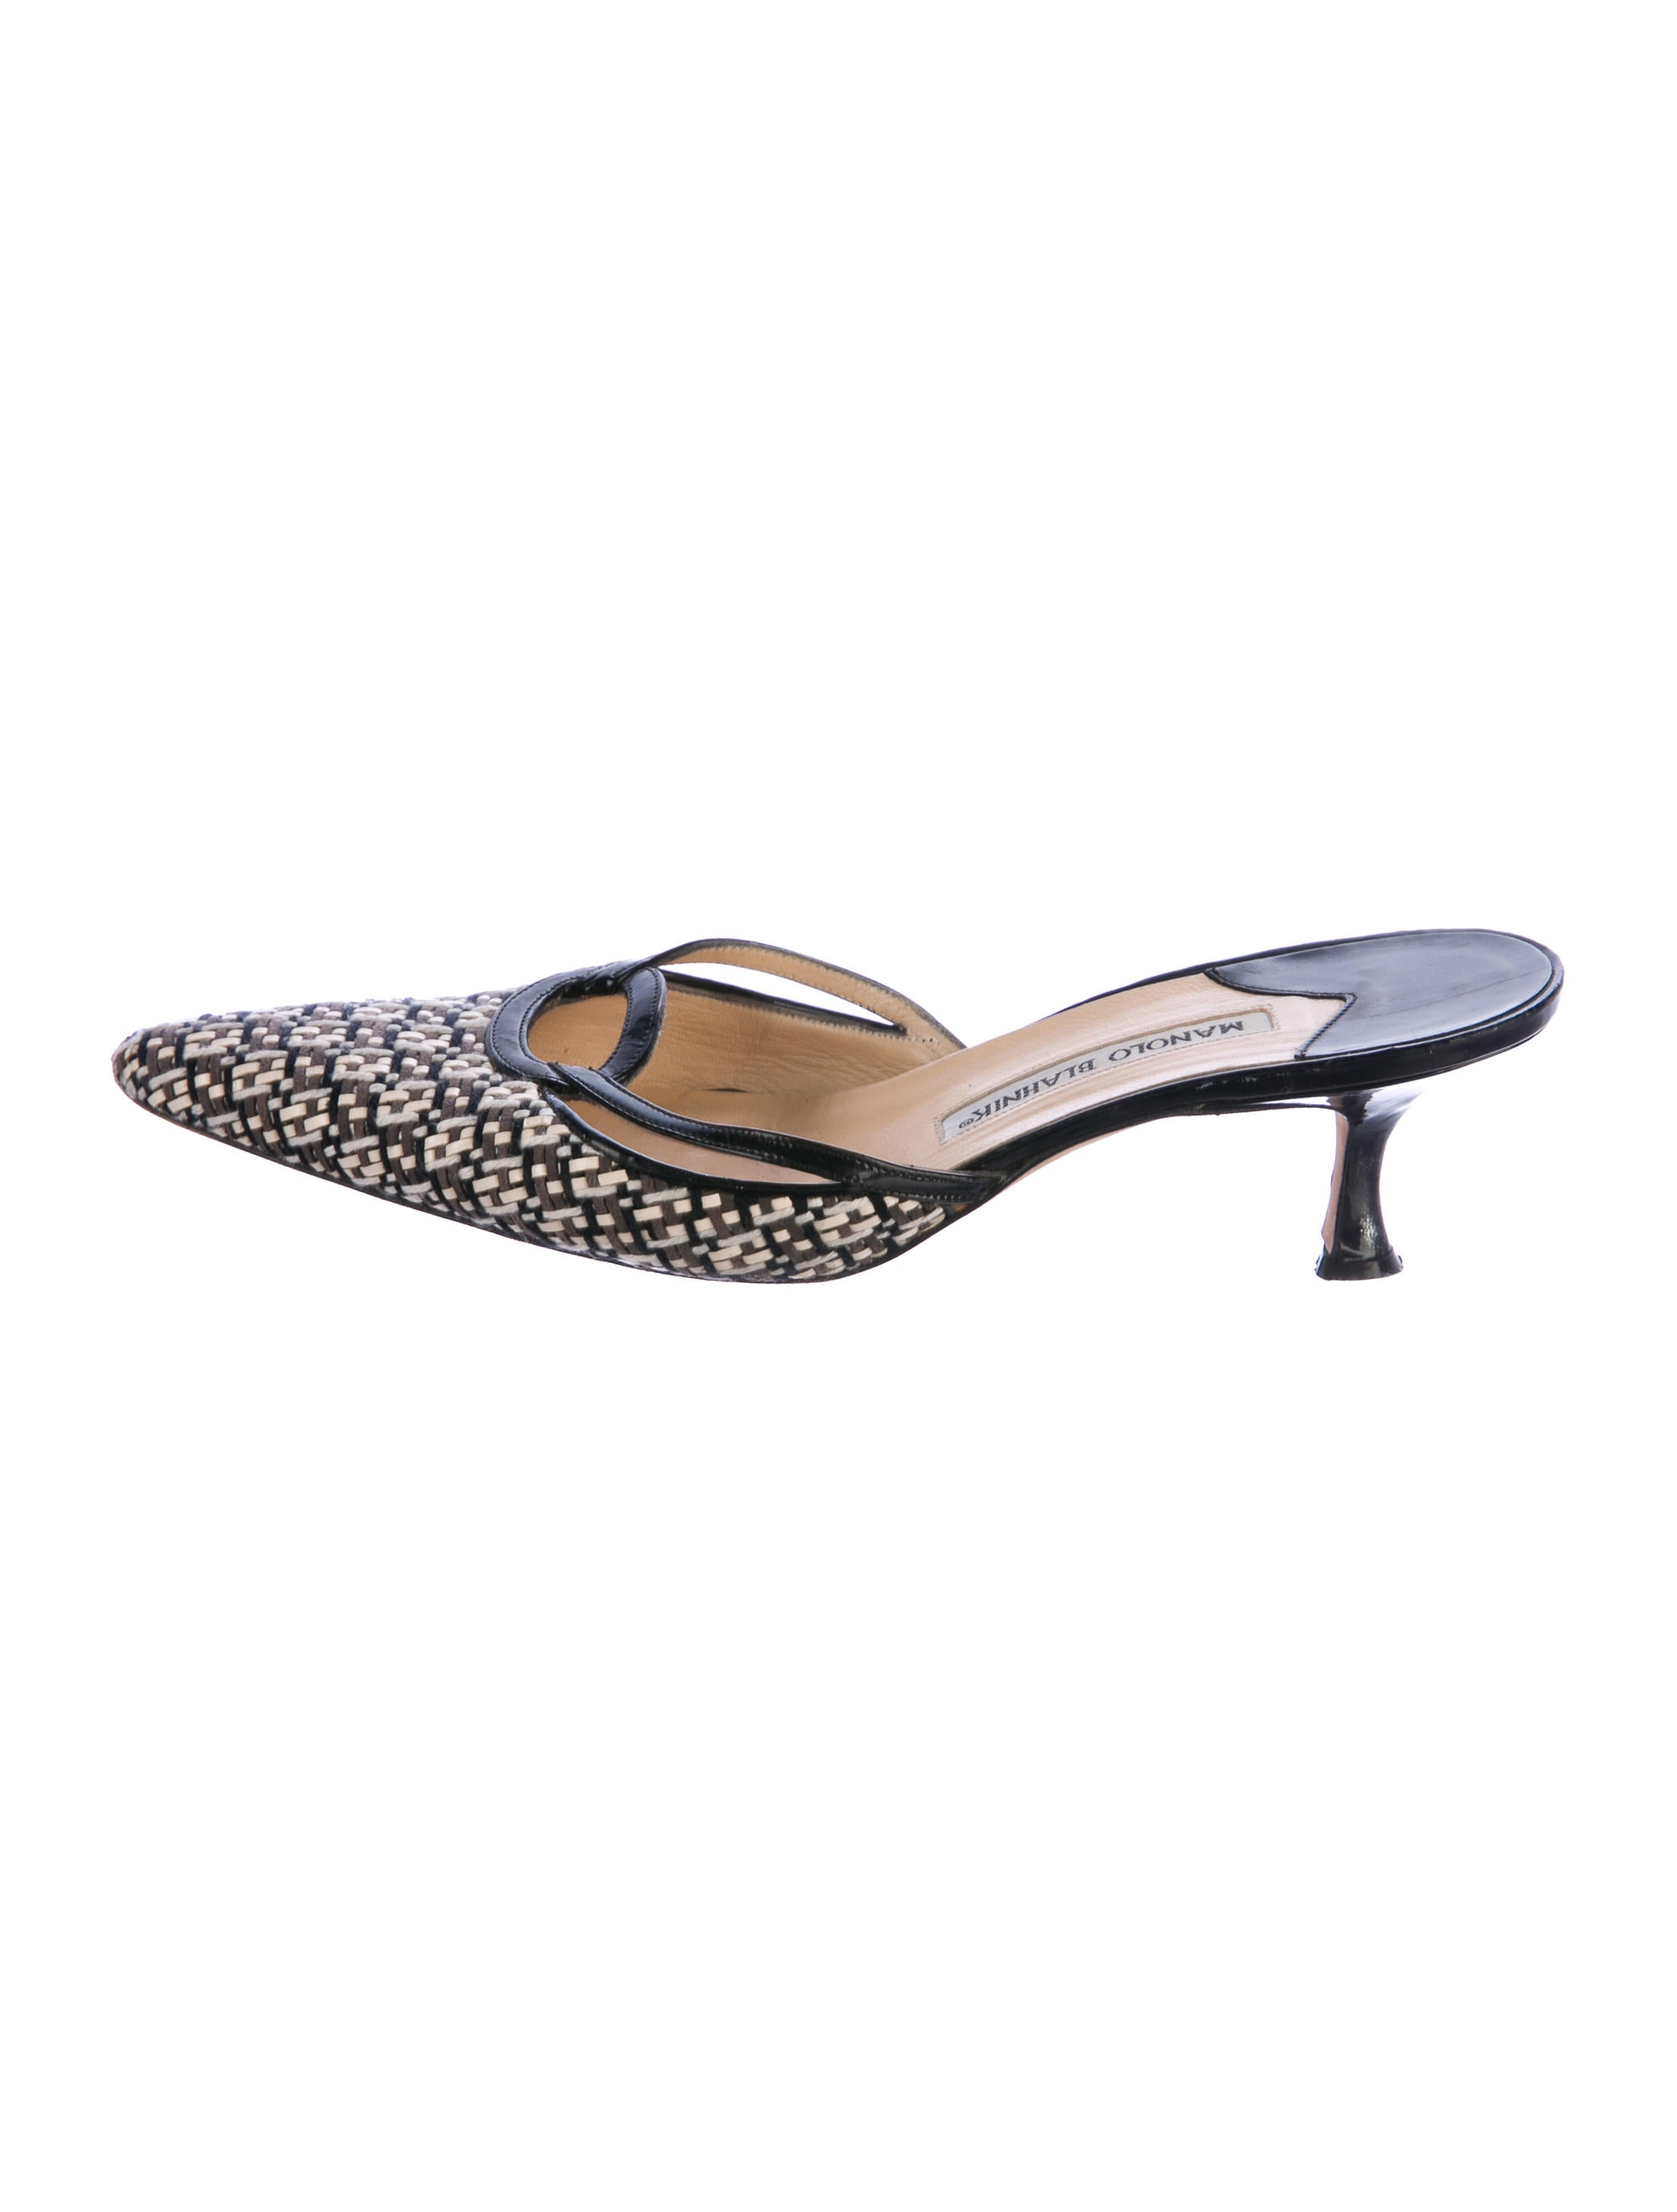 outlet deals Manolo Blahnik Woven Leather Mules discount supply PfPzoyzQ9